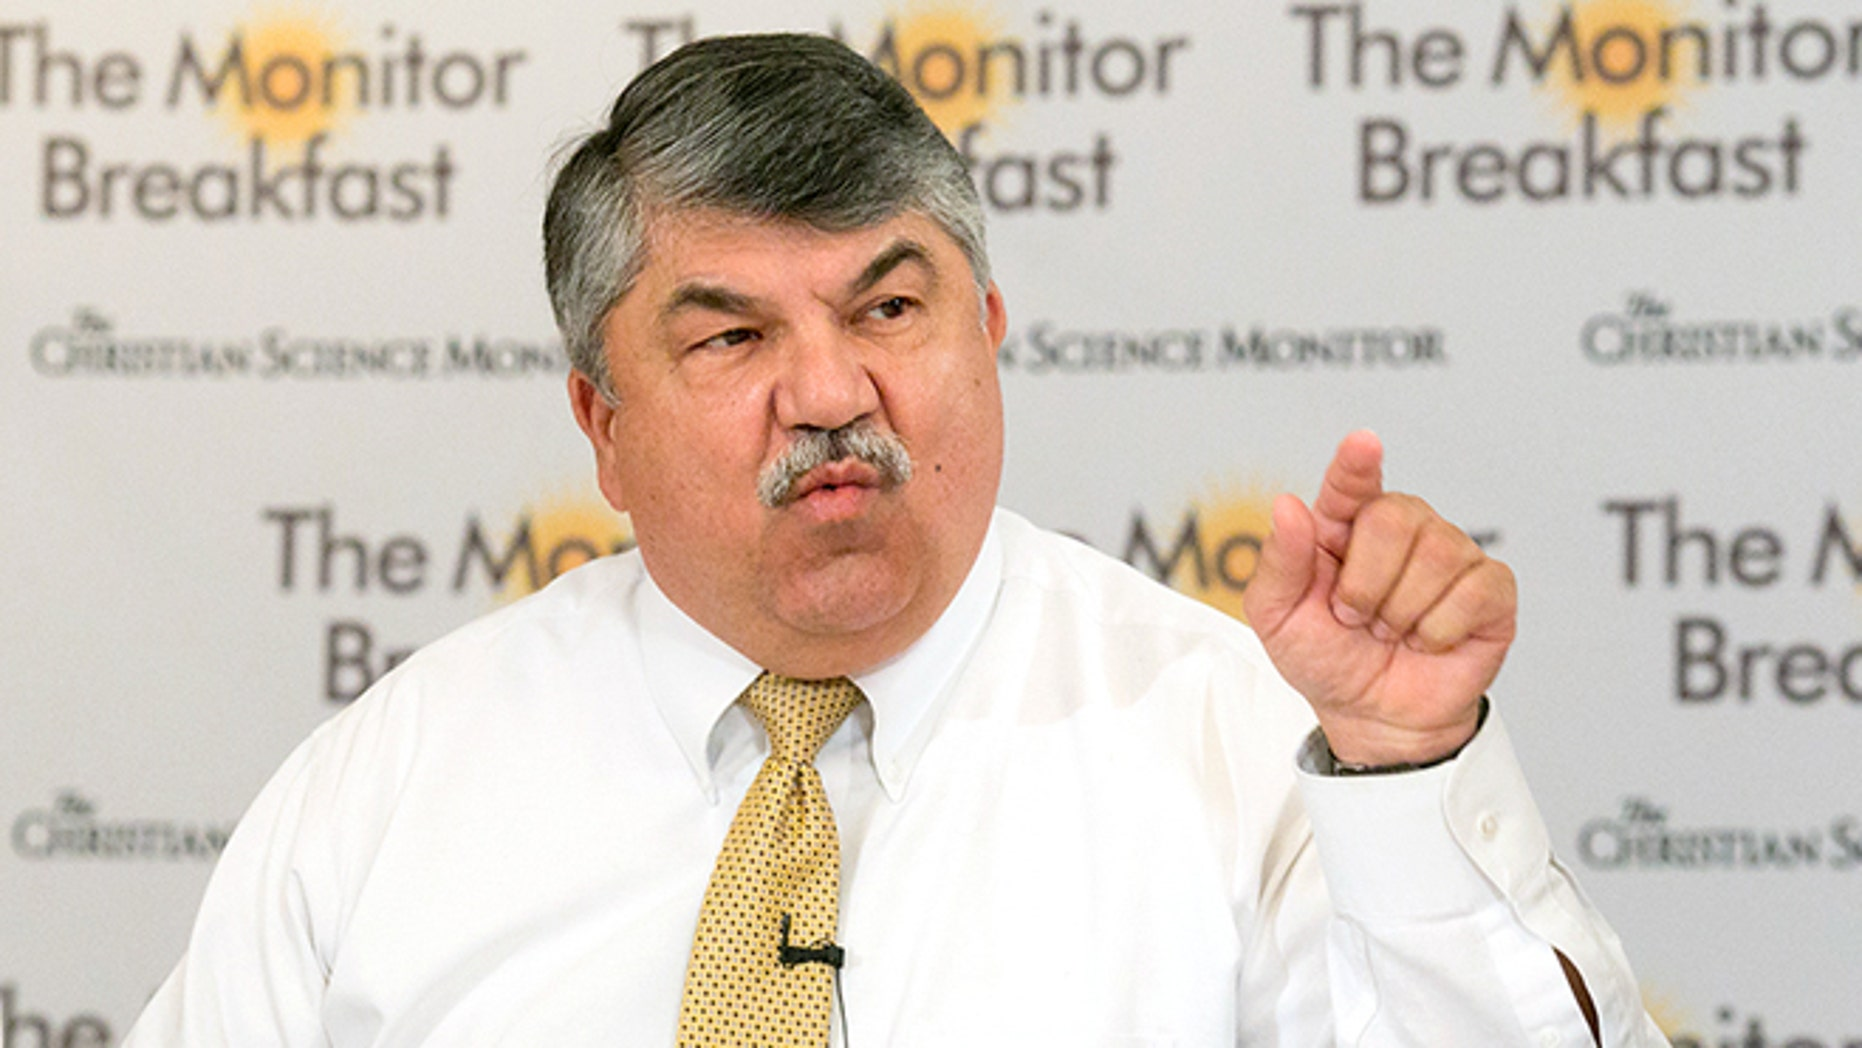 Sept. 1, 2015: AFL-CIO President Richard Trumka speaks at a Christian Science Monitor press conference in Washington, D.C.